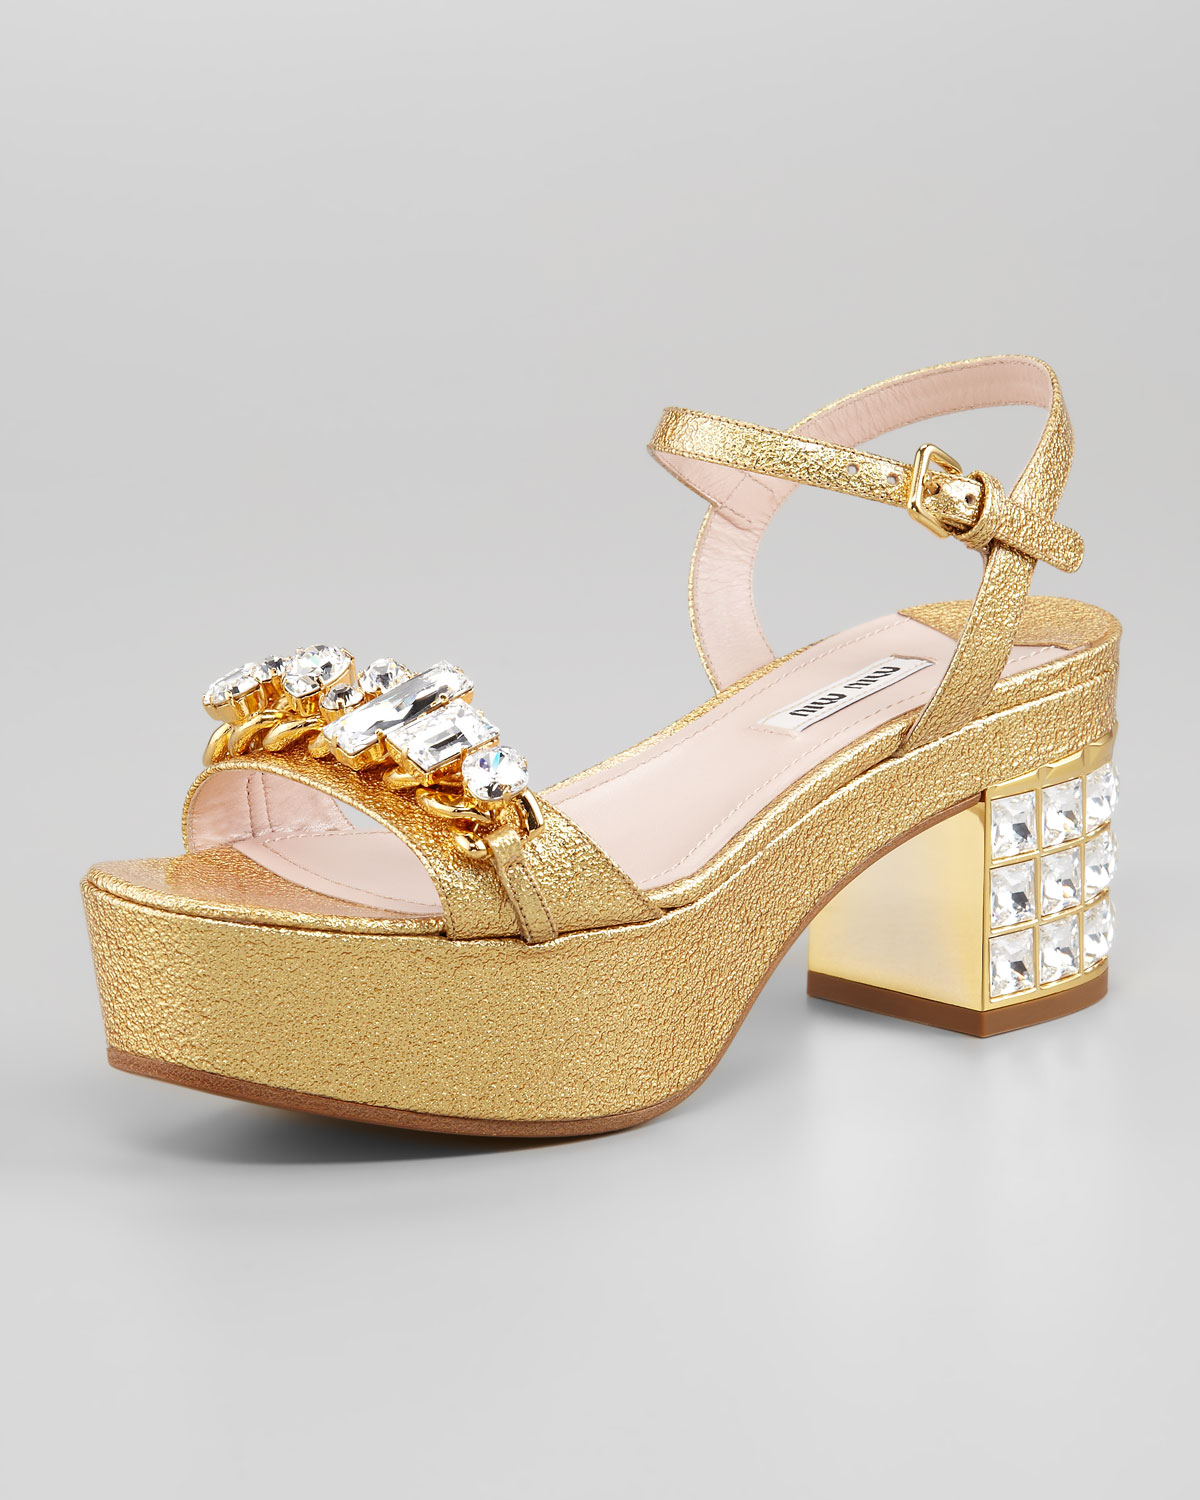 3bb43022953 Lyst - Miu Miu Jeweled Metallic Leather Midheel Sandal in Metallic